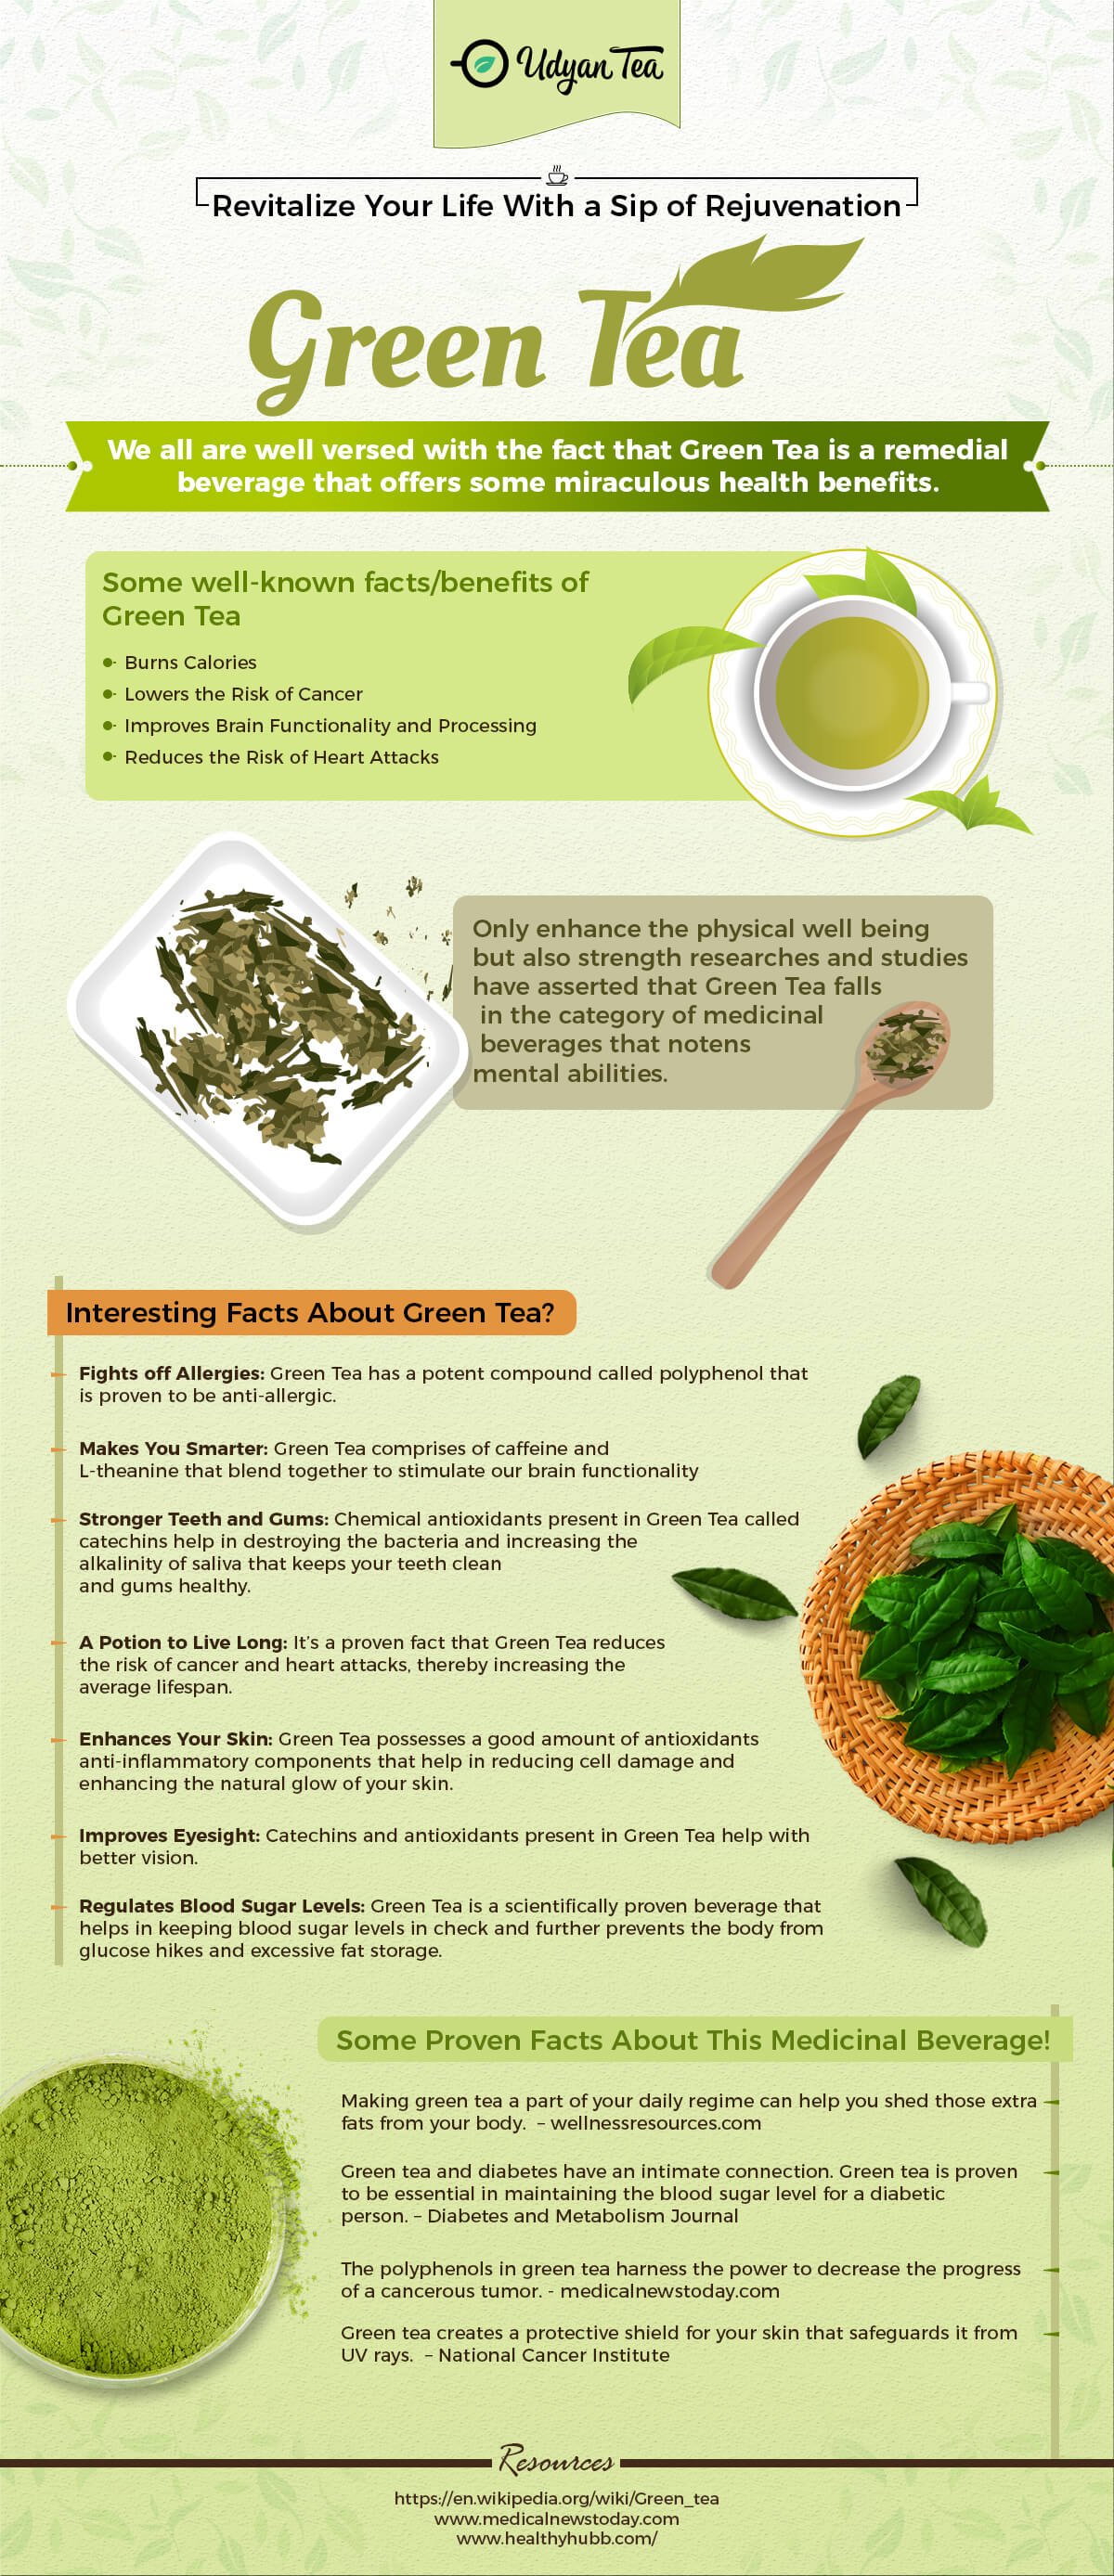 Revitalize-Your-Life-With-a-Sip-of-RejuvenationGreen-Tea